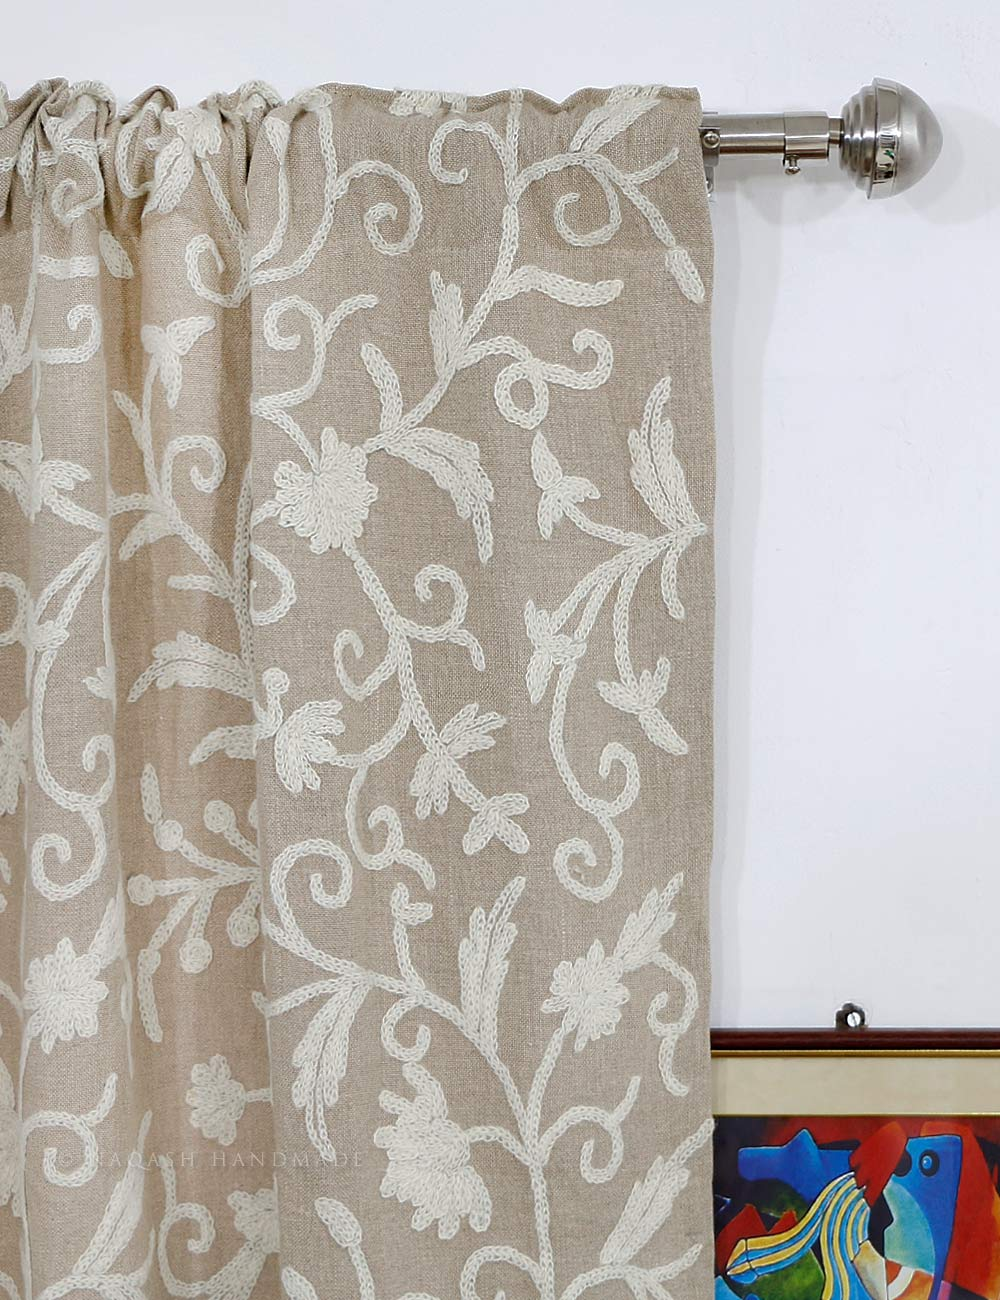 Flocked Curtains | Boho Curtain Panels | Embroidered Curtains